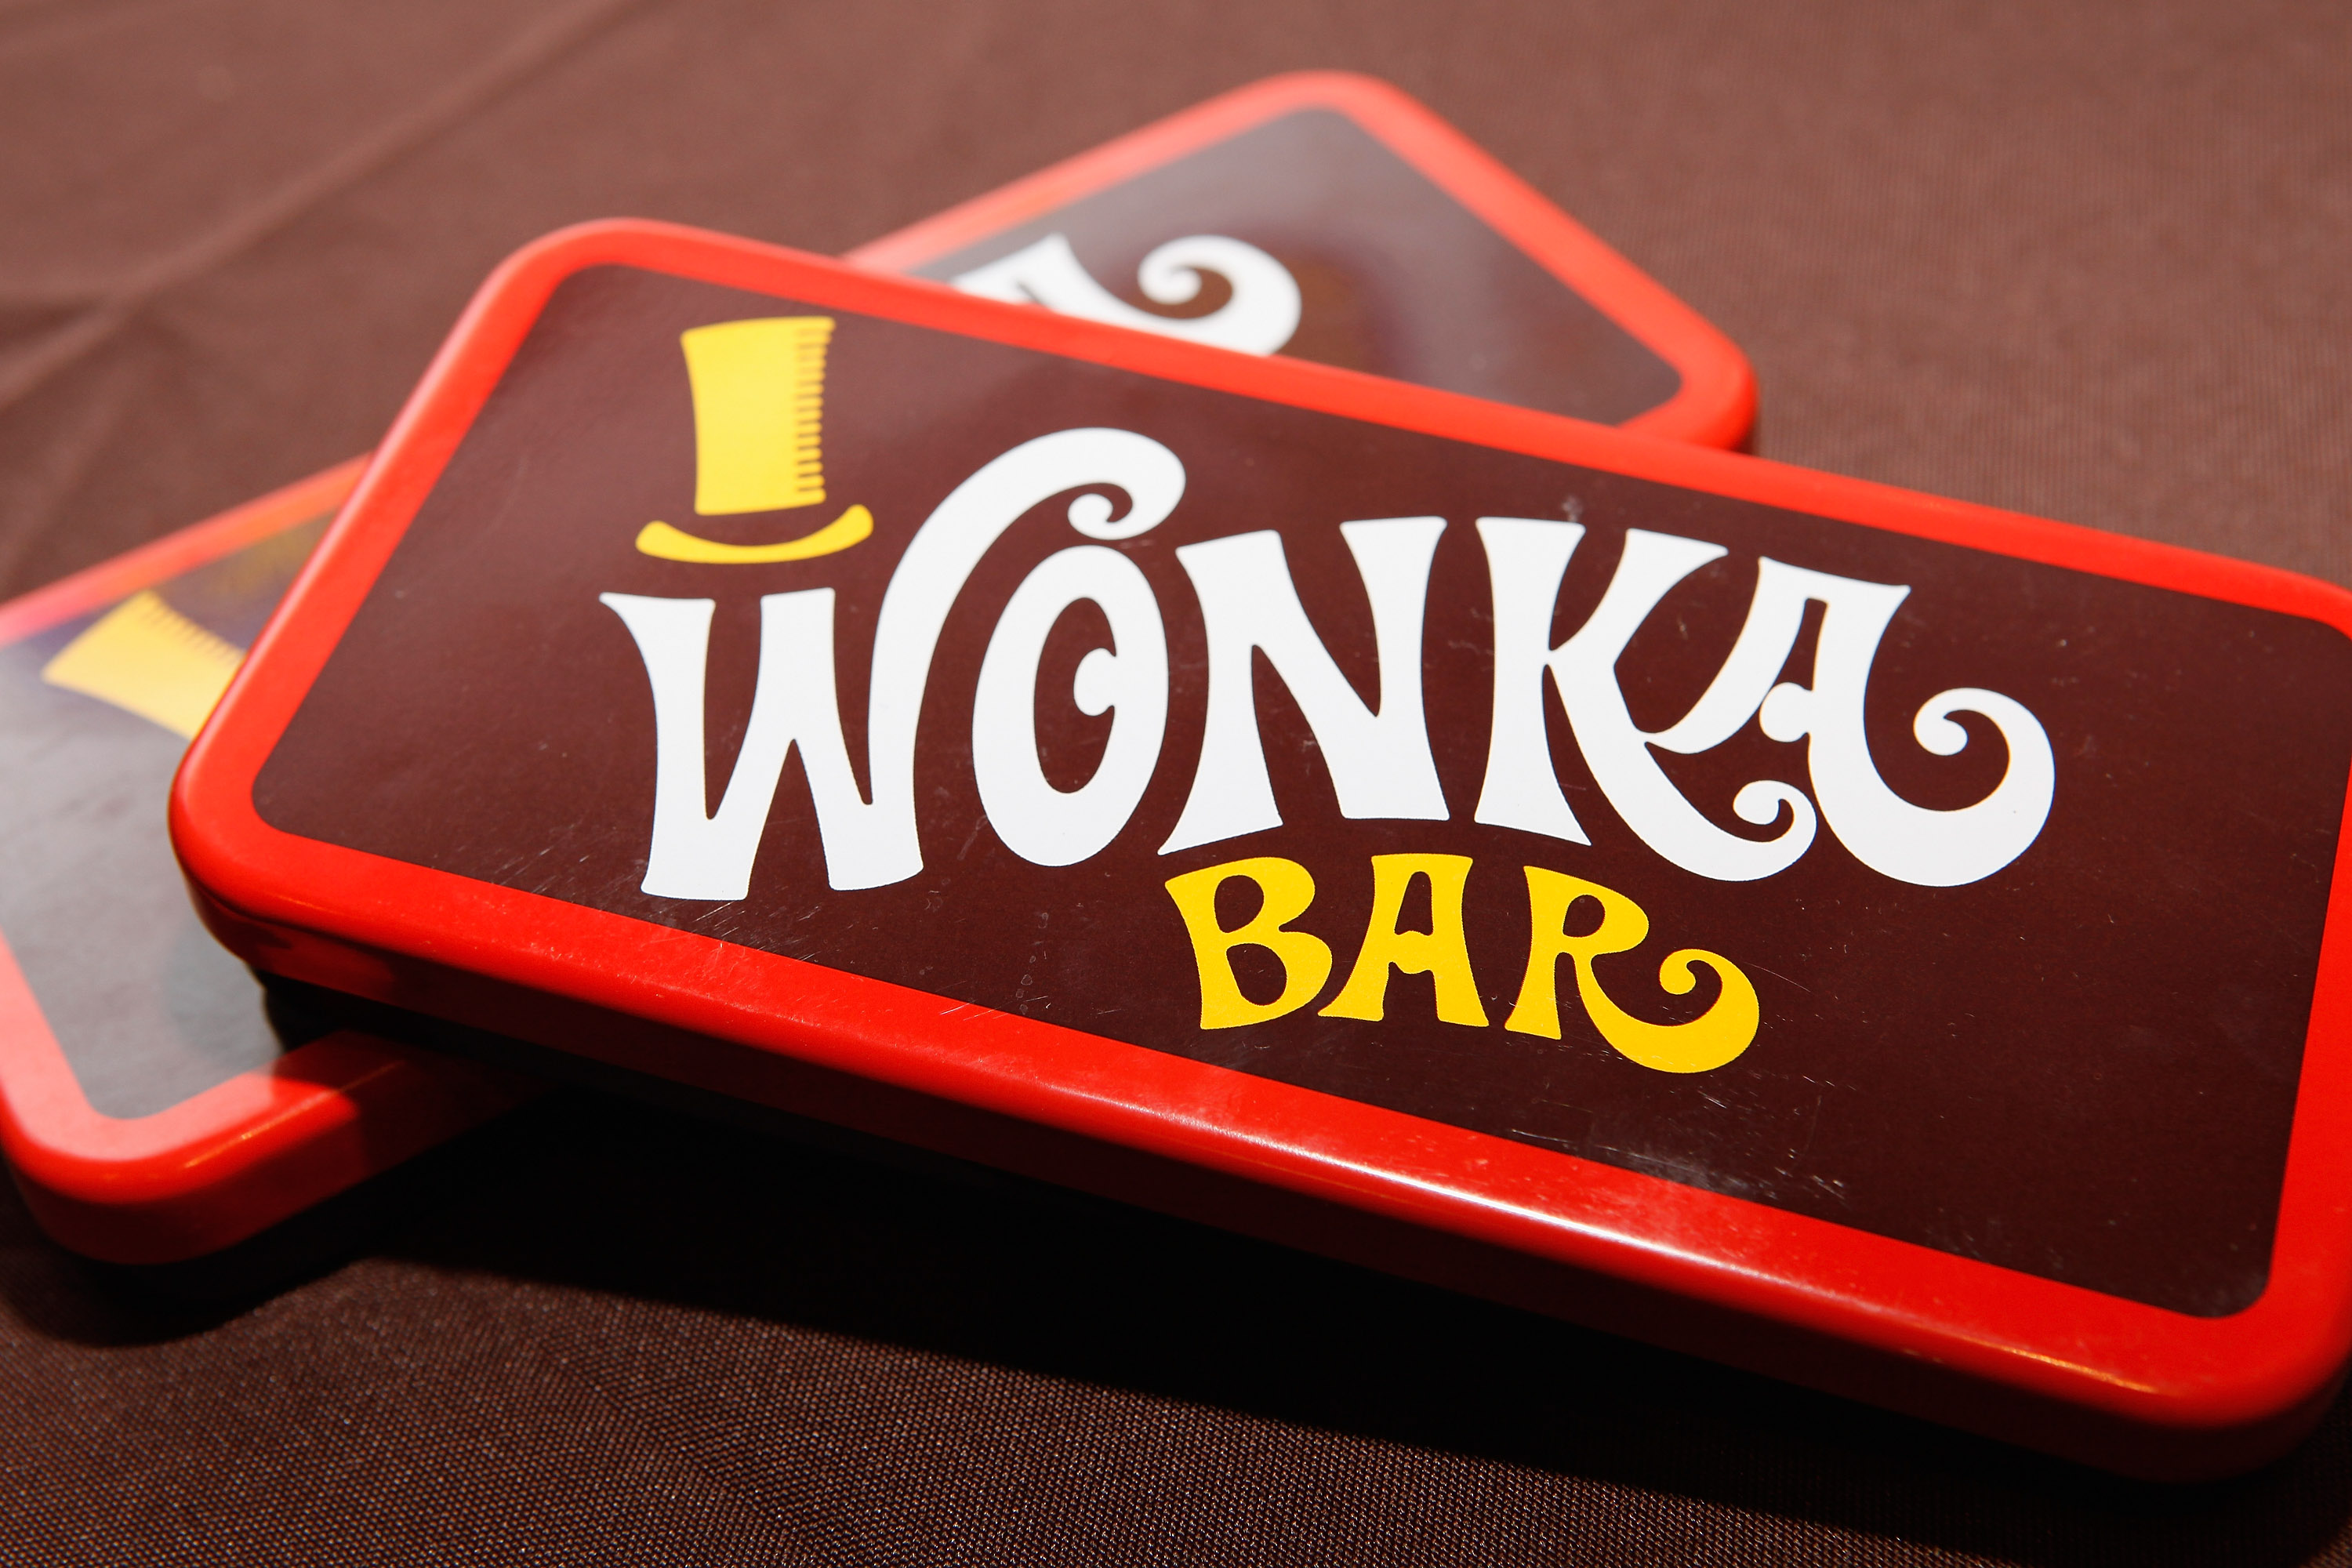 40th Anniversary Of Willy Wonka & The Chocolate Factory